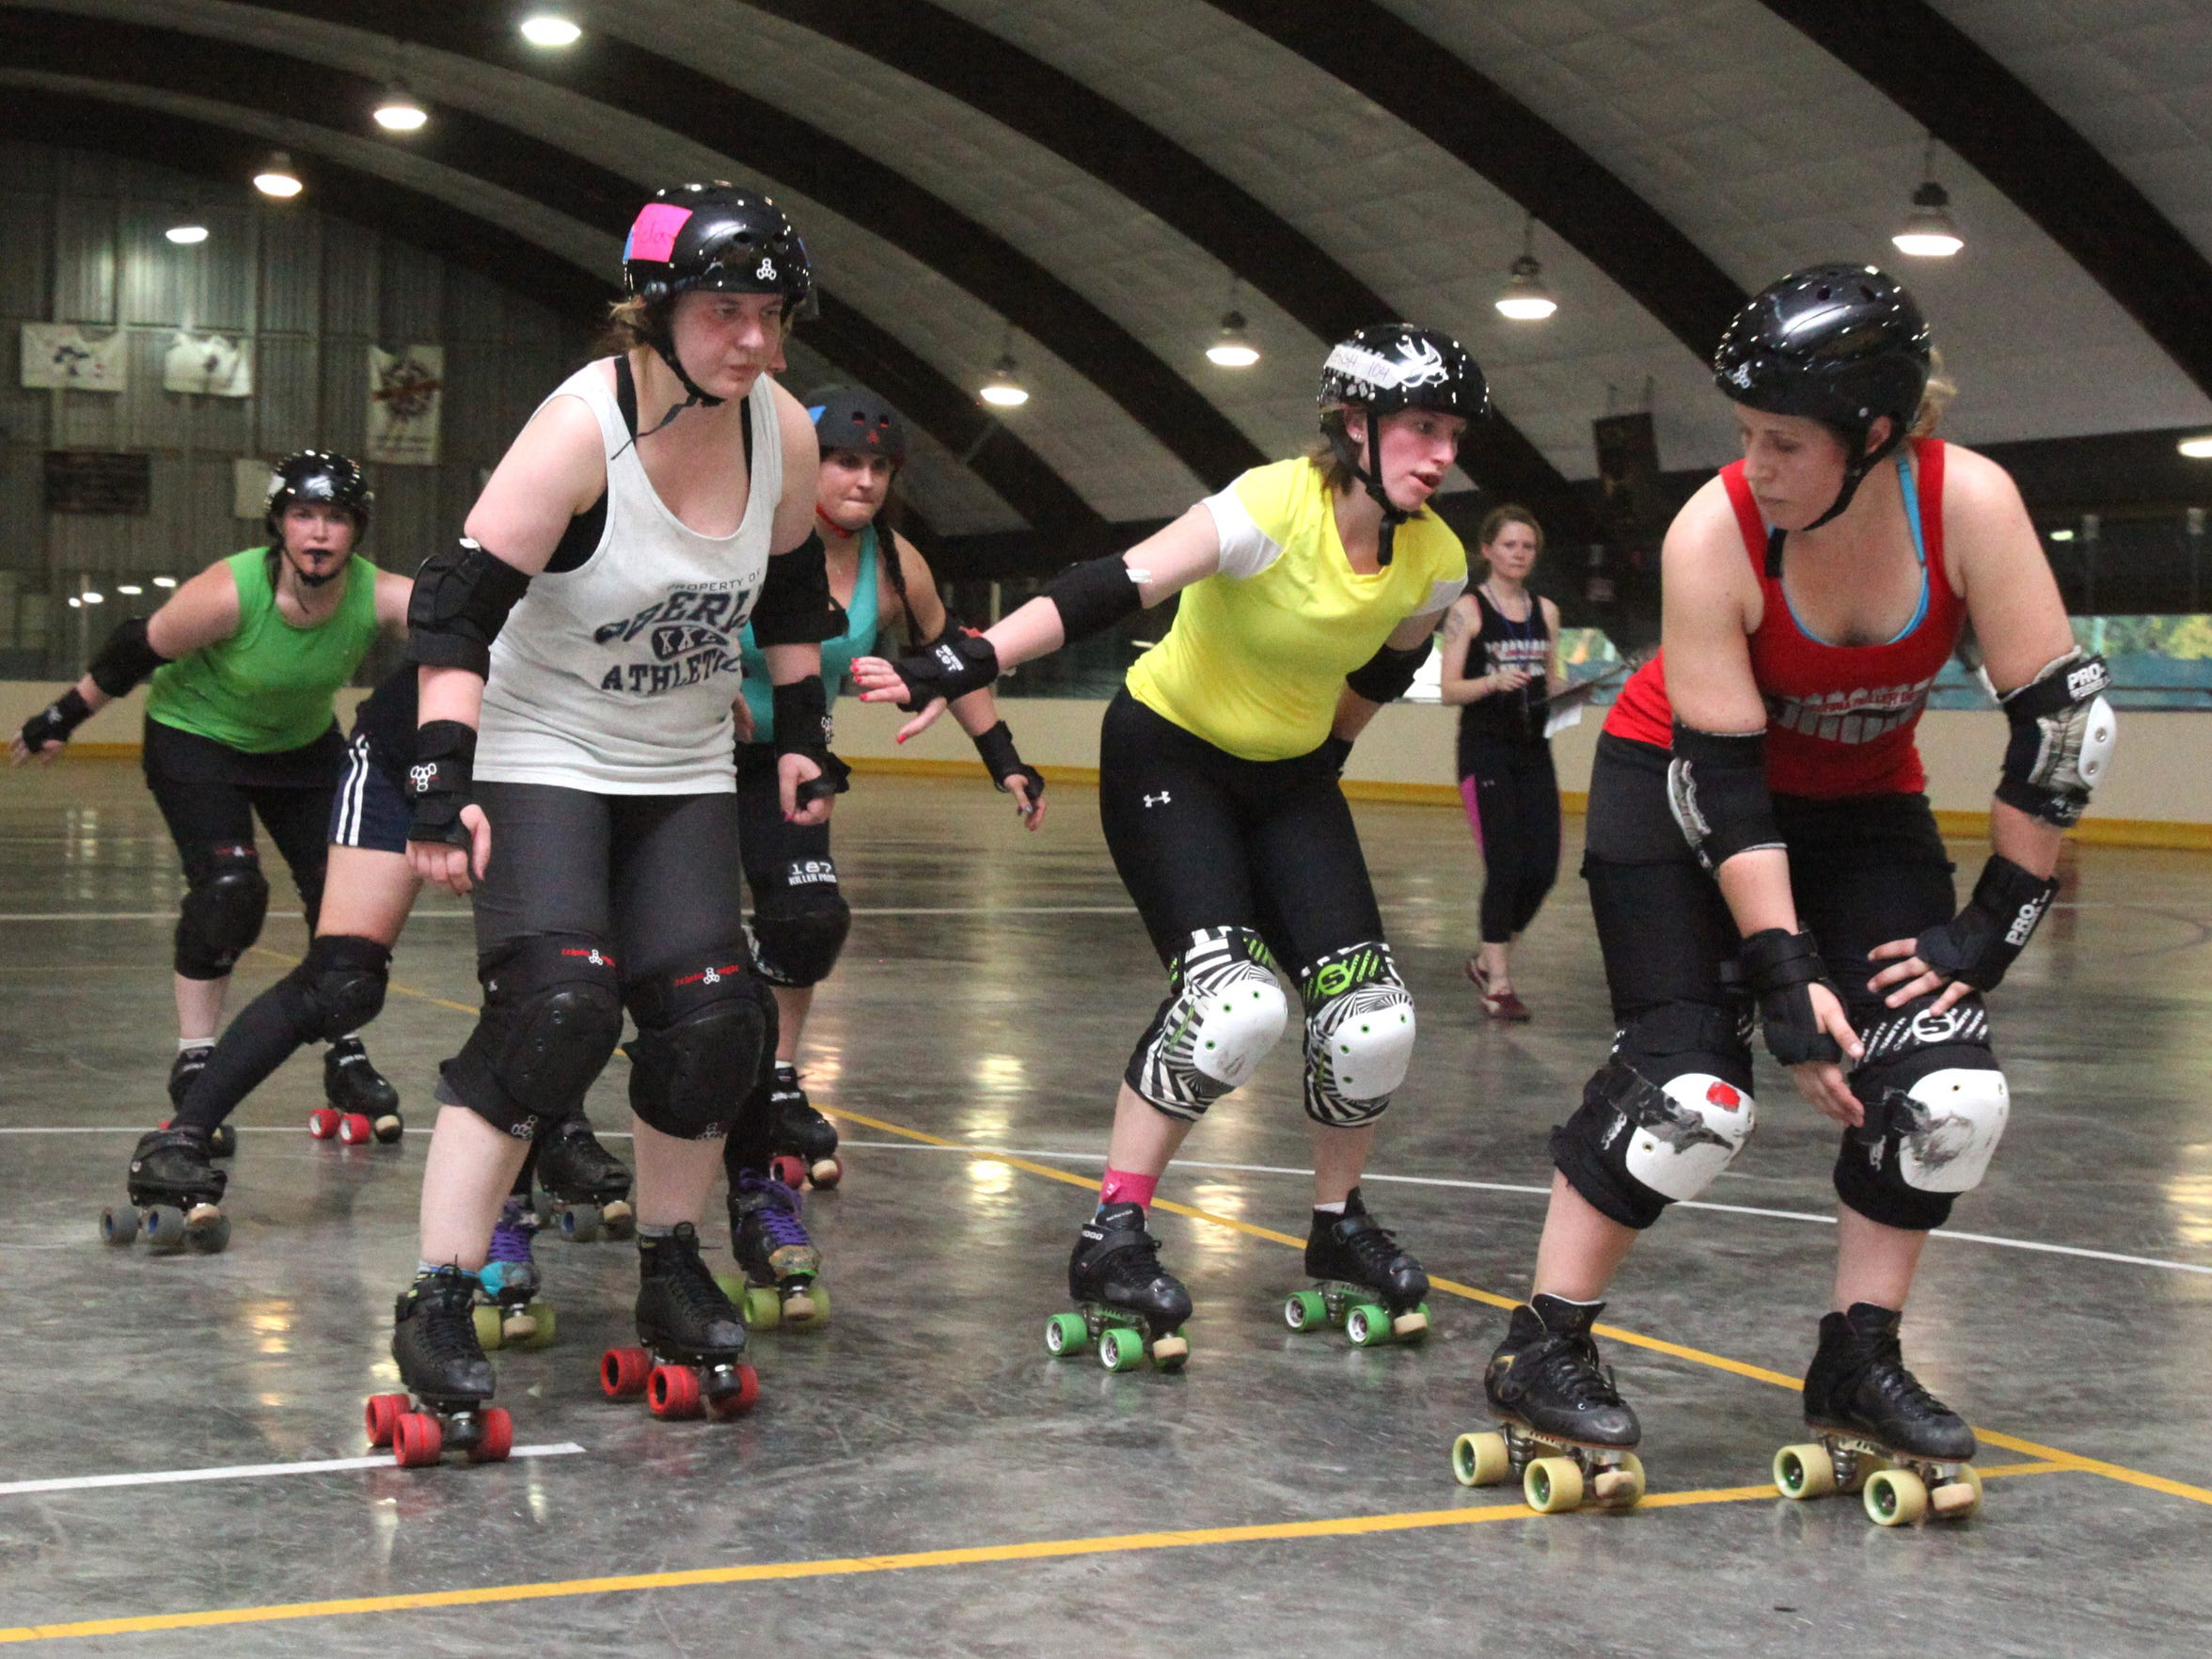 Suburbia Roller Derby will hold tryouts on Sept. 14 and 16.